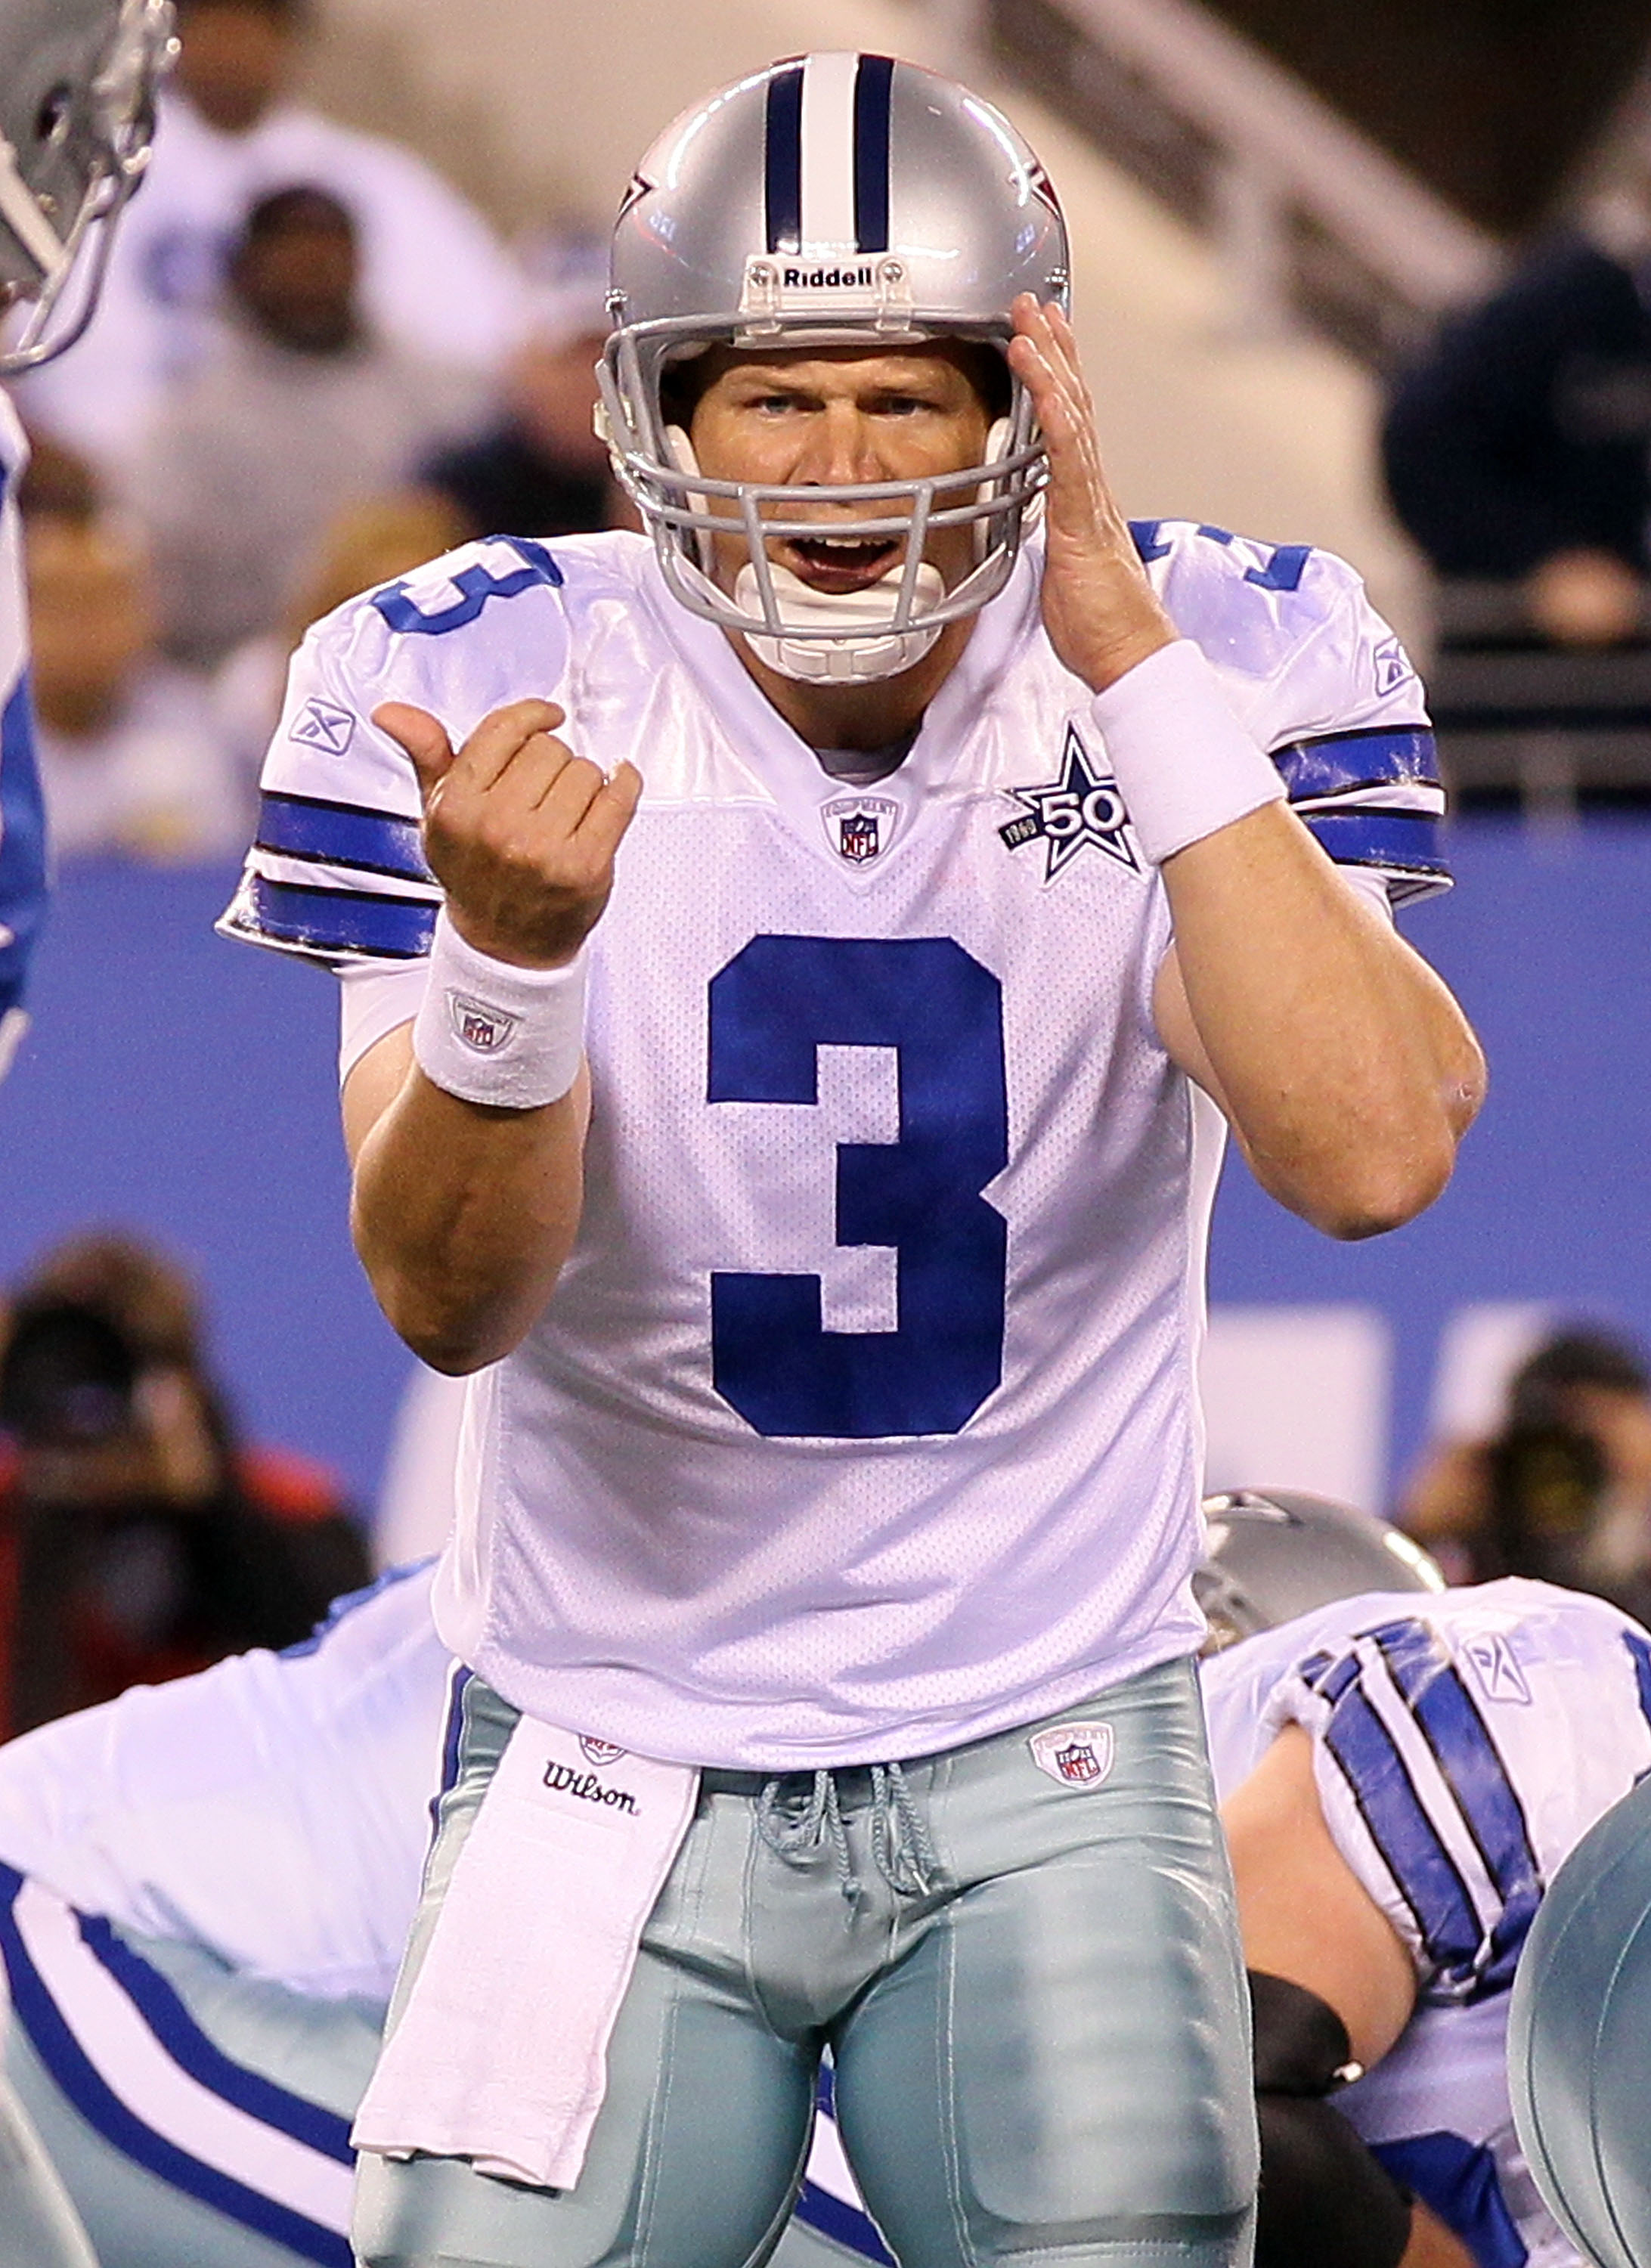 EAST RUTHERFORD, NJ - NOVEMBER 14:  Jon Kitna #3 of the Dallas Cowboys calls a play against the New York Giants on November 14, 2010 at the New Meadowlands Stadium in East Rutherford, New Jersey. The Cowboys defeated the Giants 33-20.  (Photo by Jim McIsa